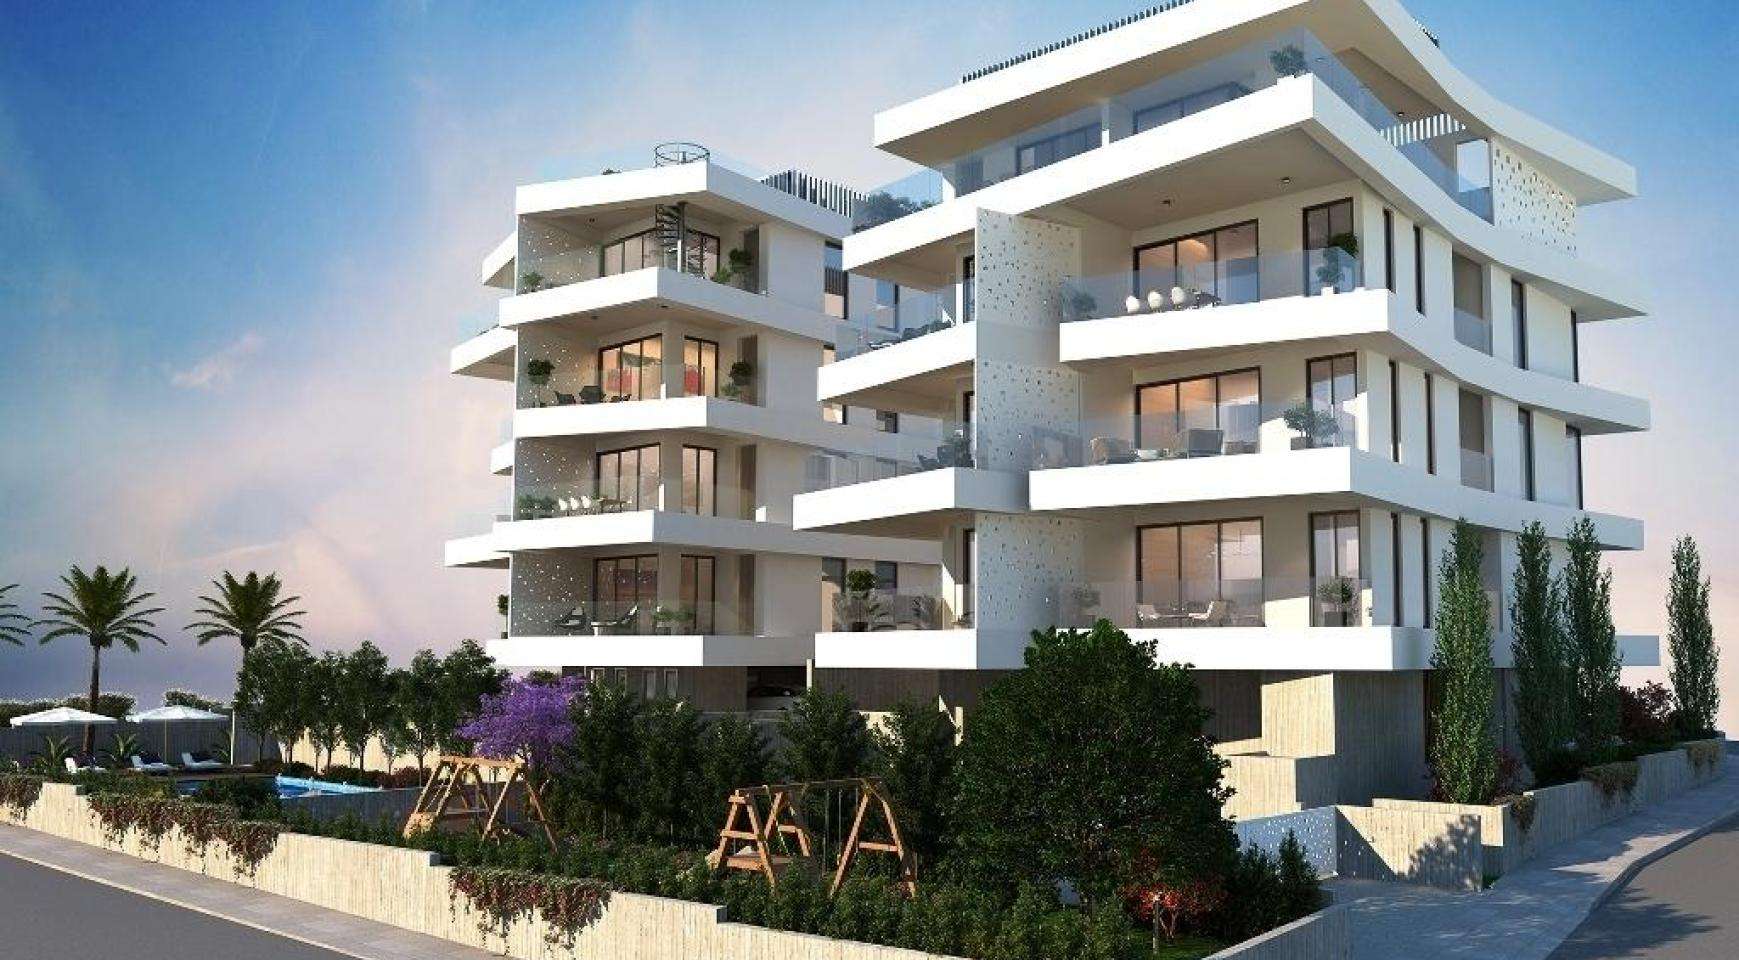 New 3 Bedroom Apartment in a Contemporary Complex in Germasogeia - 6